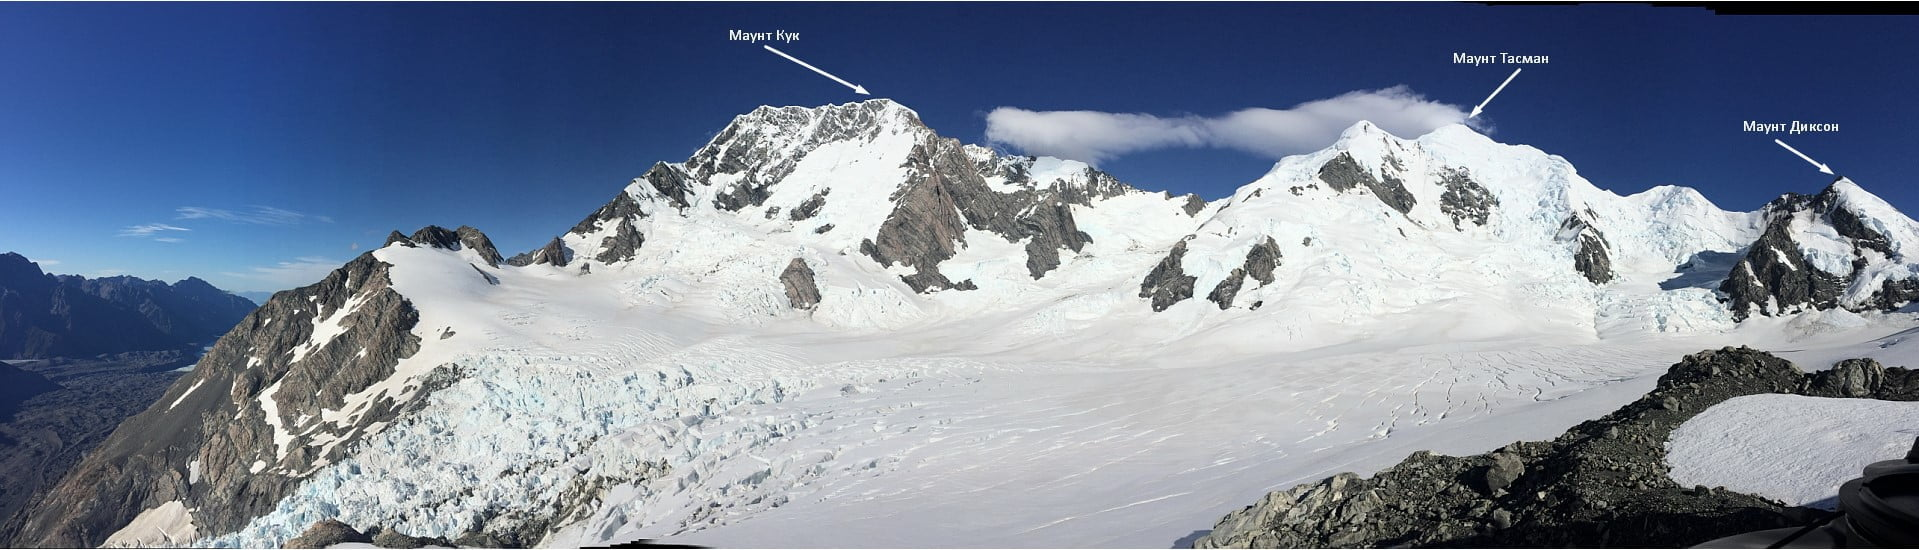 Panorama View From Plateau Hut